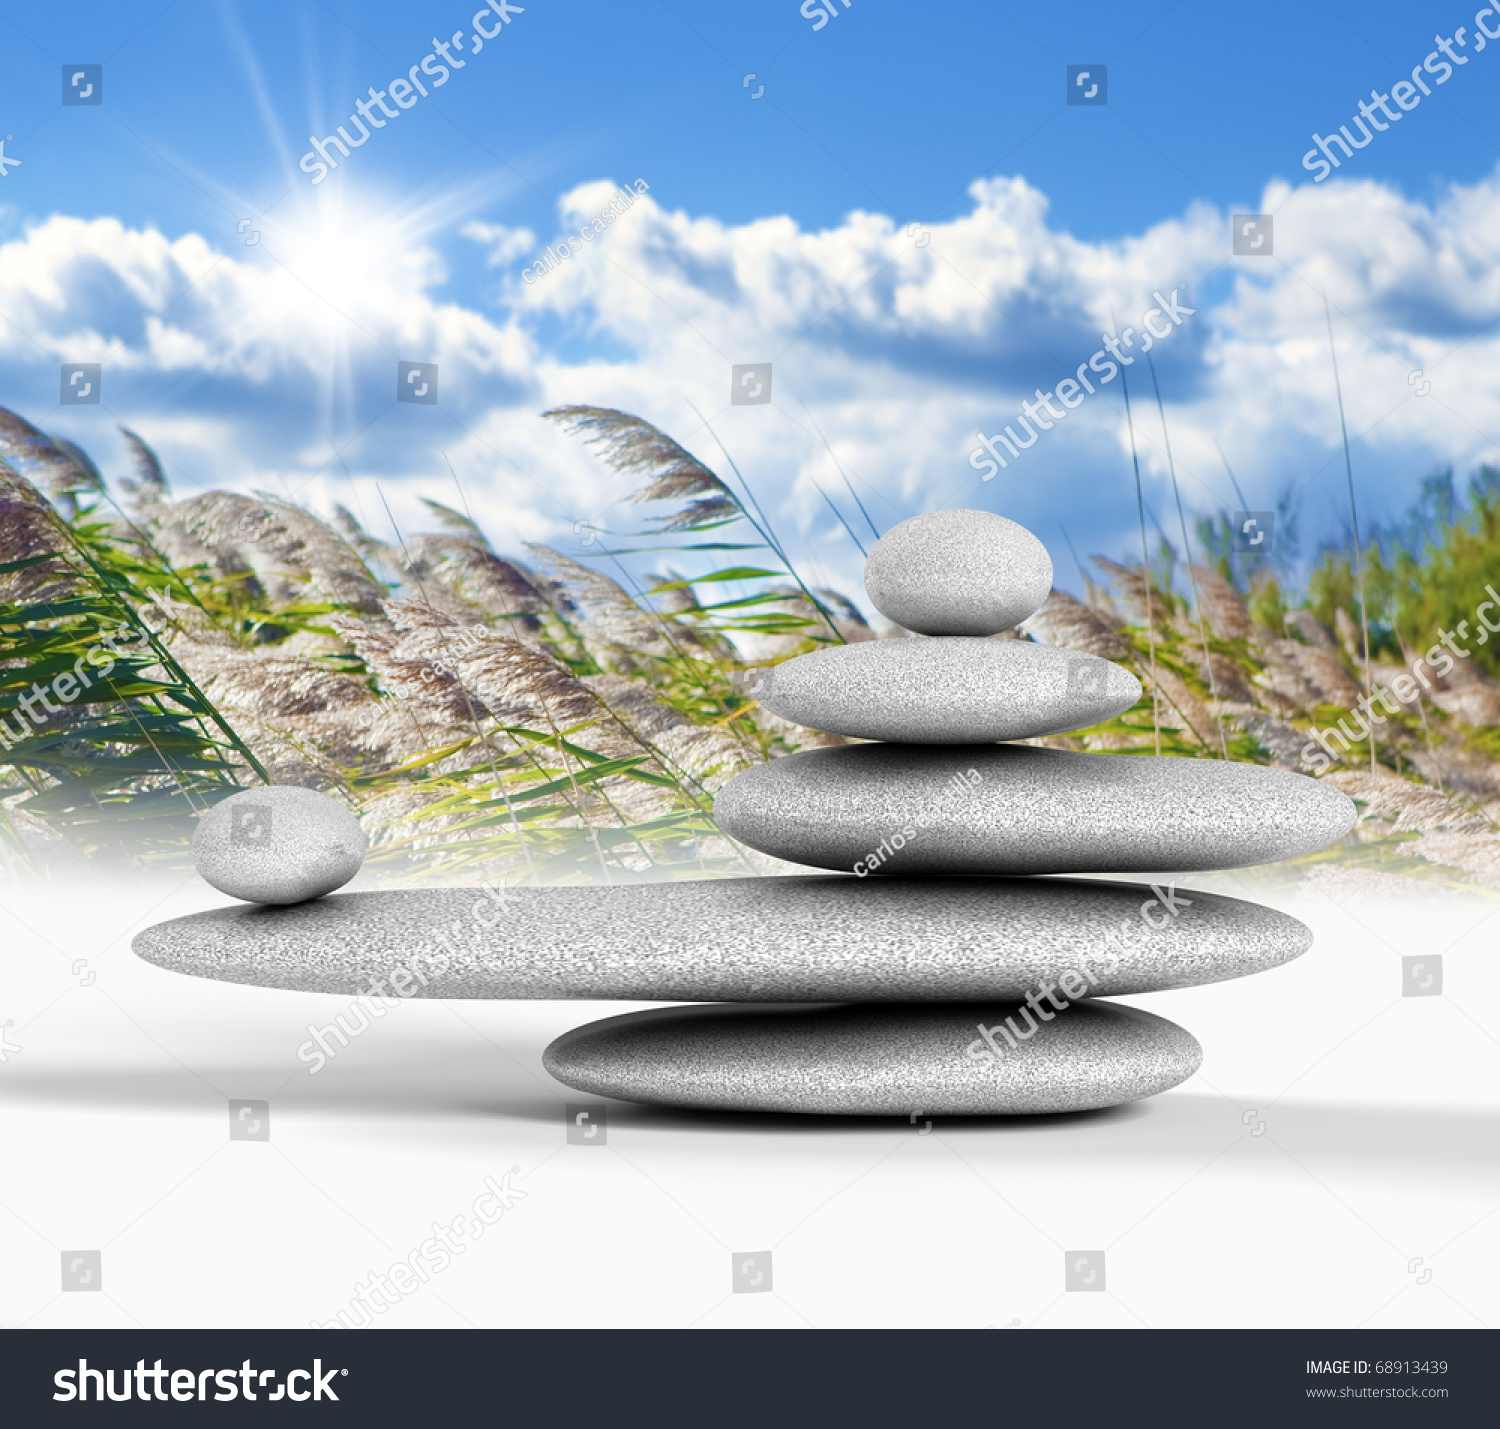 zen concept with balanced rocks sky and nature background stock photo 68913439 shutterstock. Black Bedroom Furniture Sets. Home Design Ideas